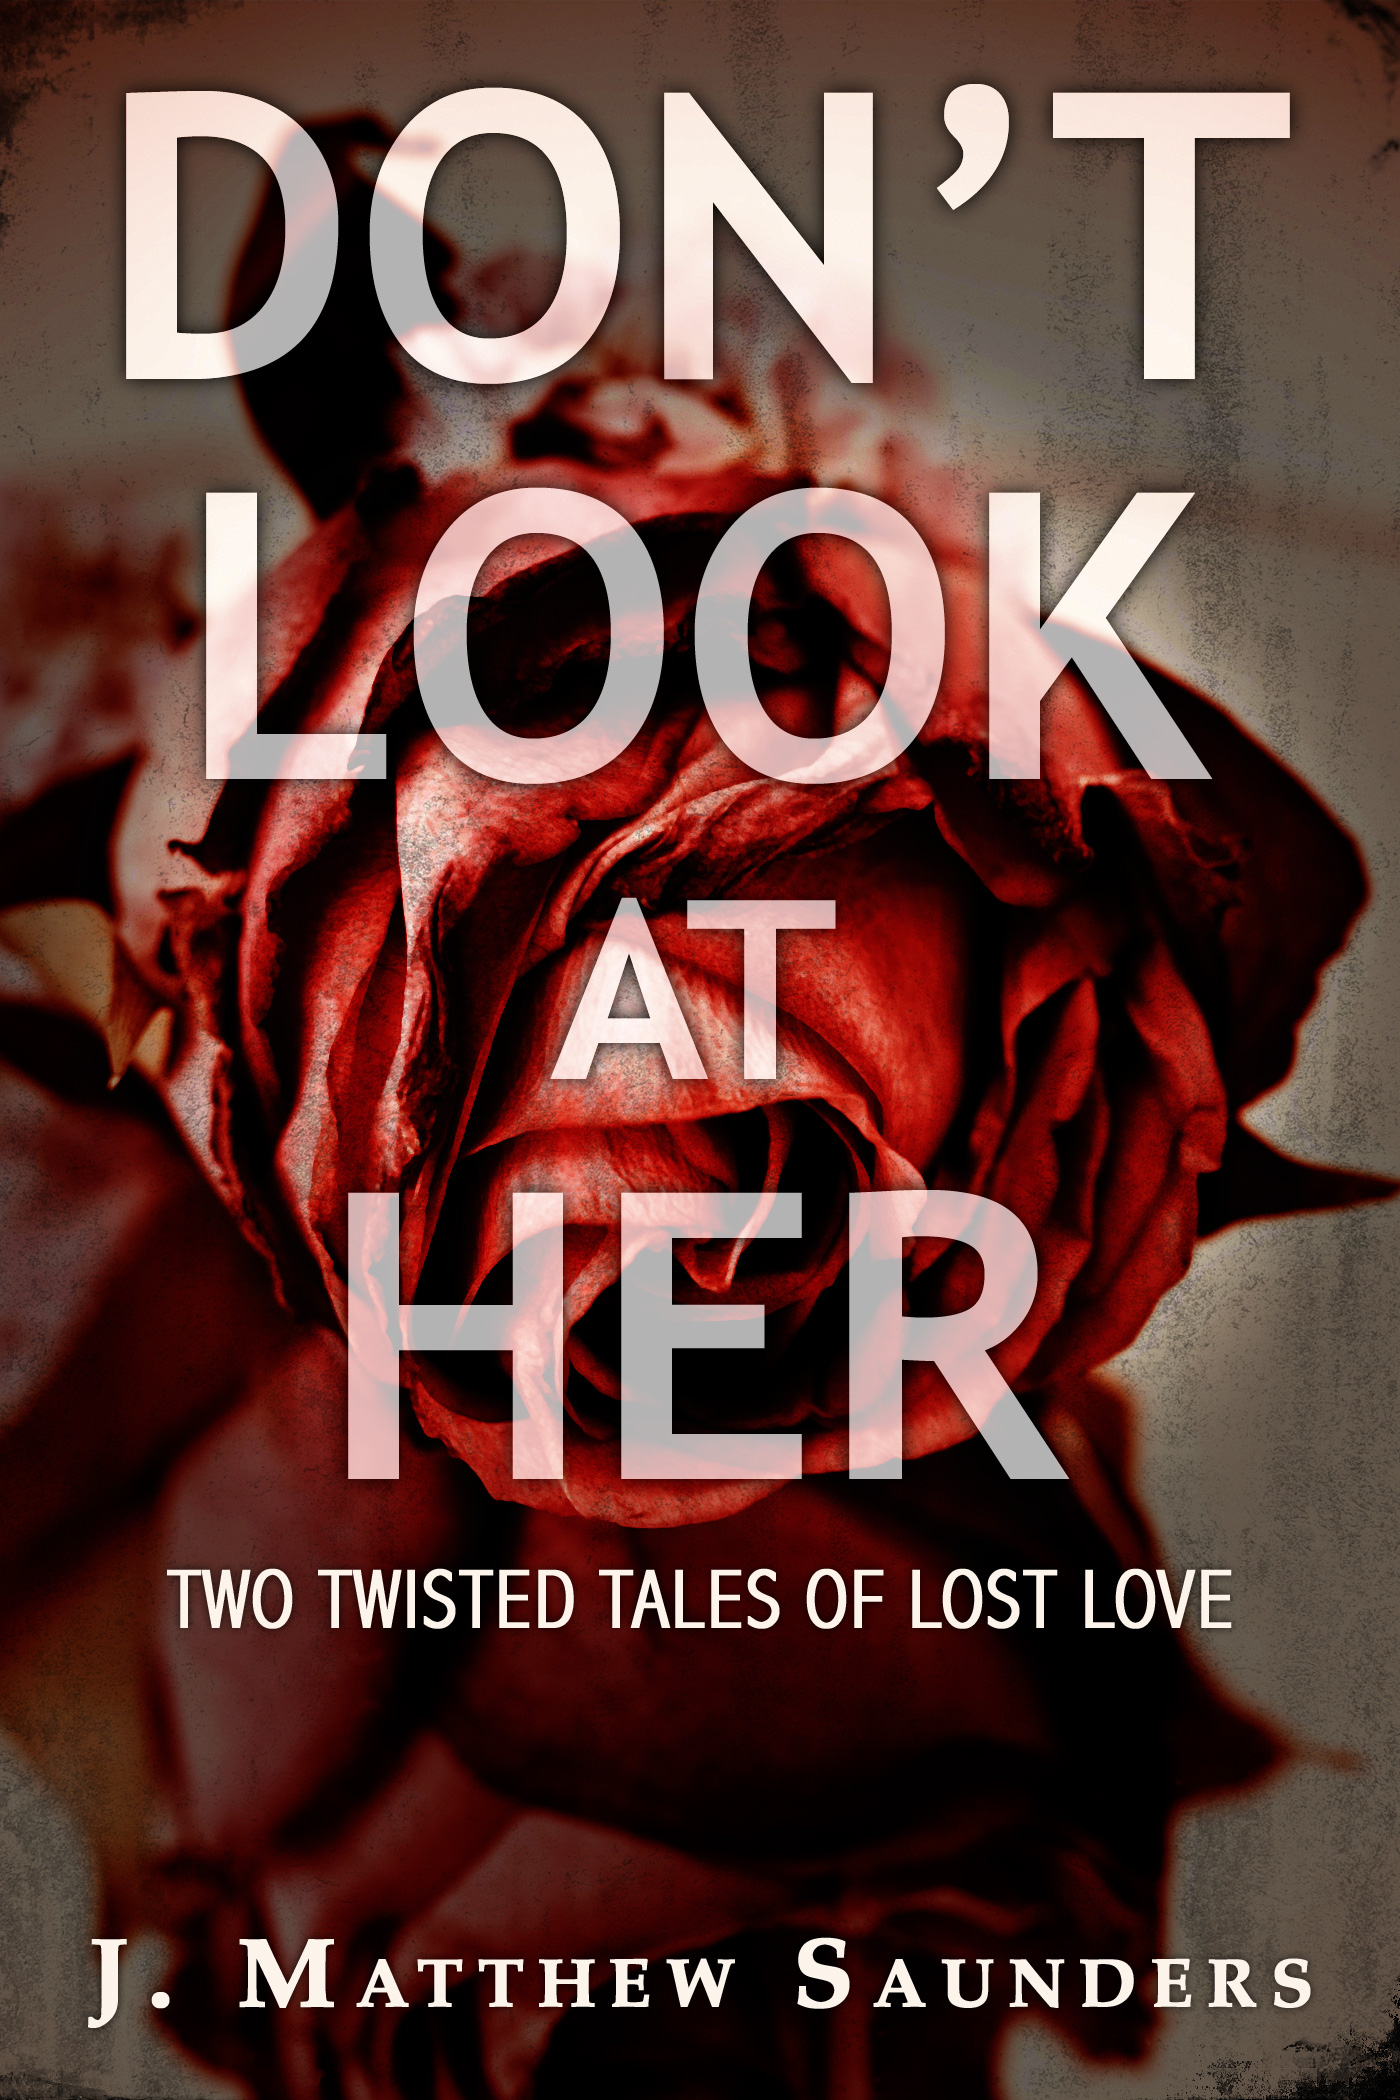 Don't Look at Her: Two Twisted Tales of Lost Love